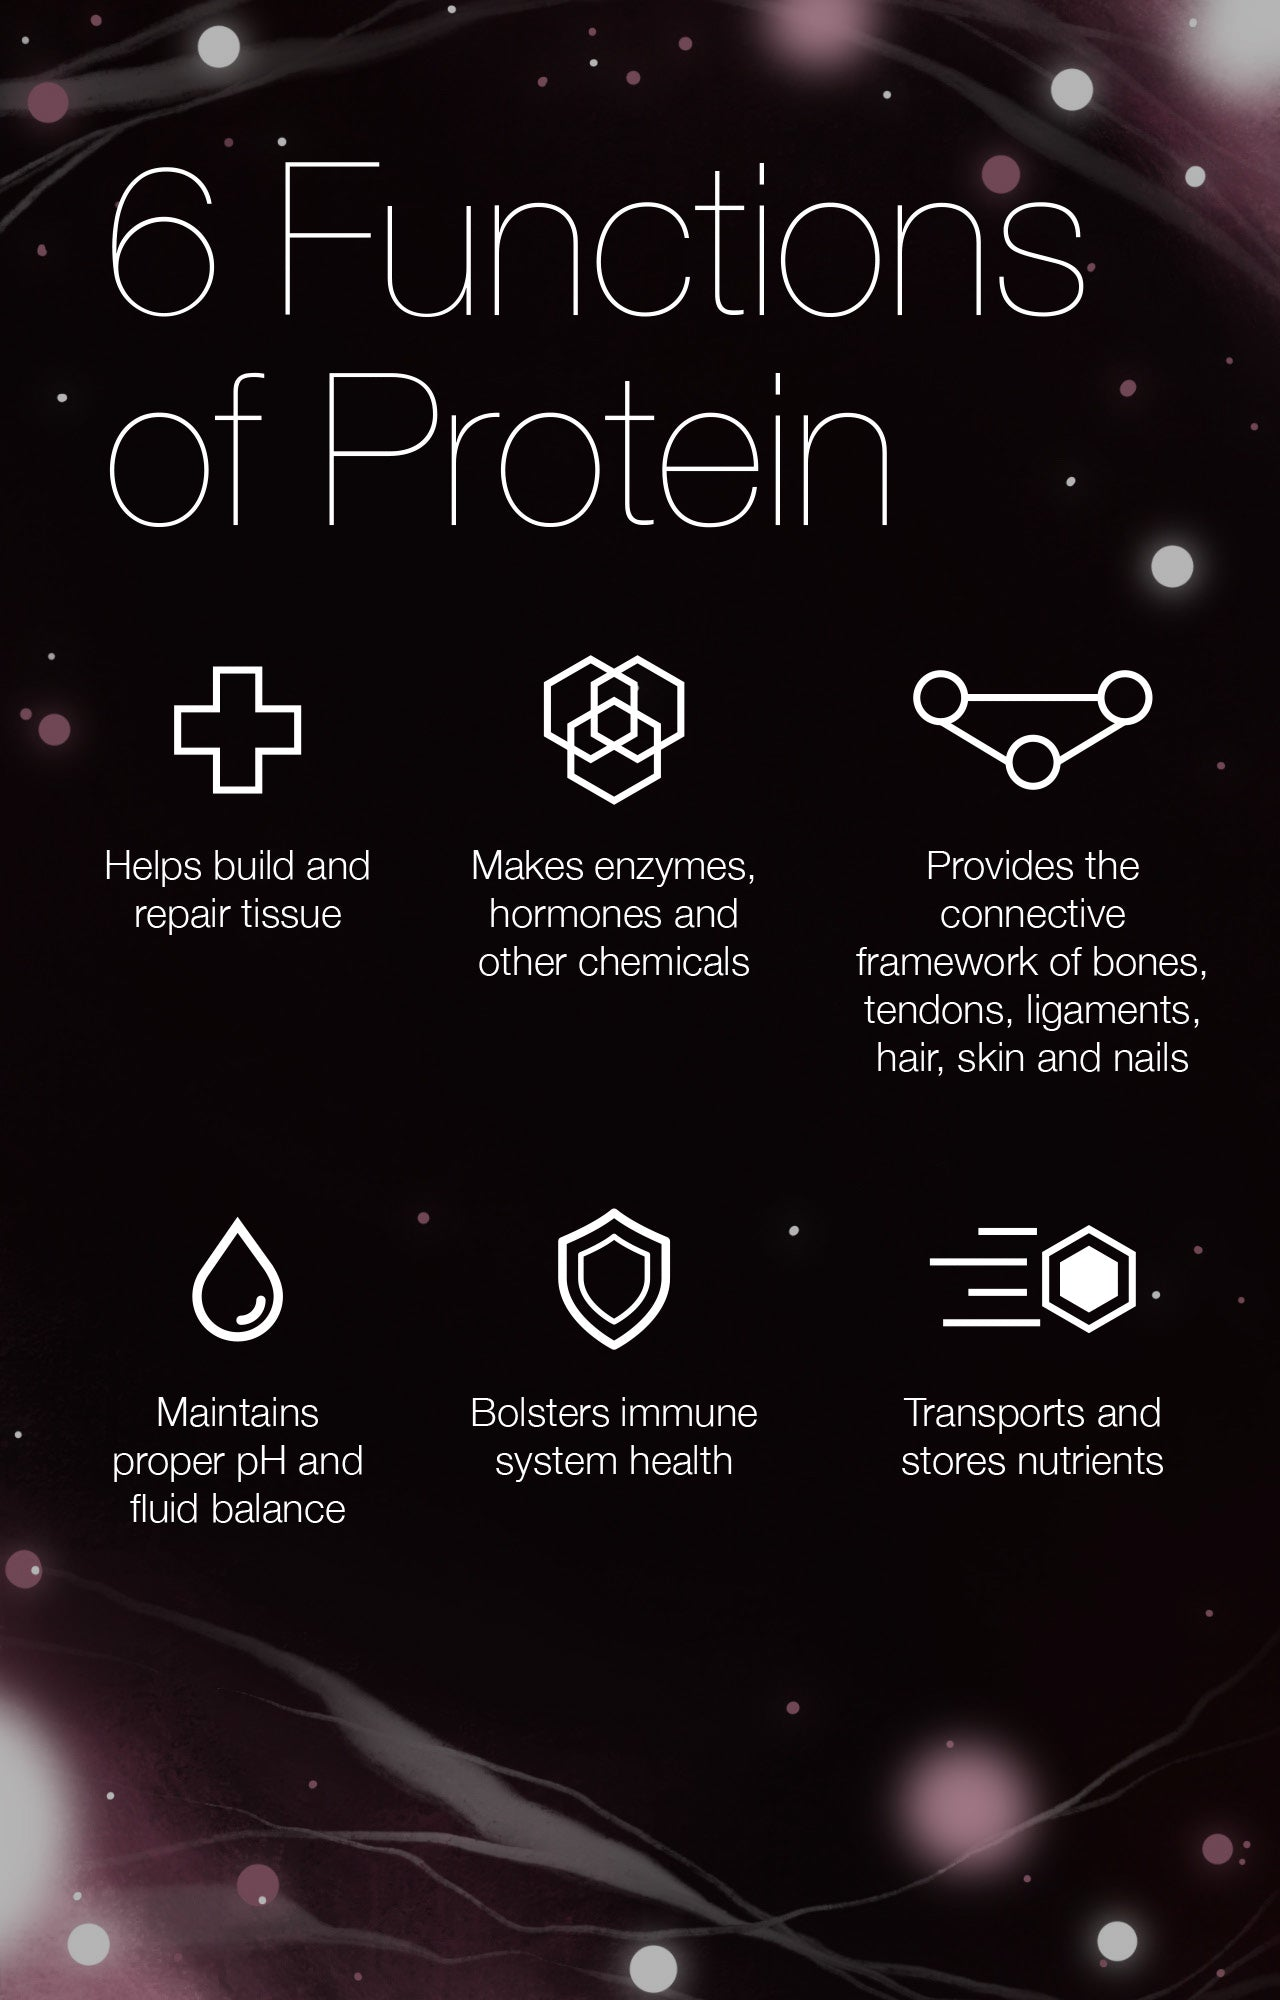 6 Functions of Protein